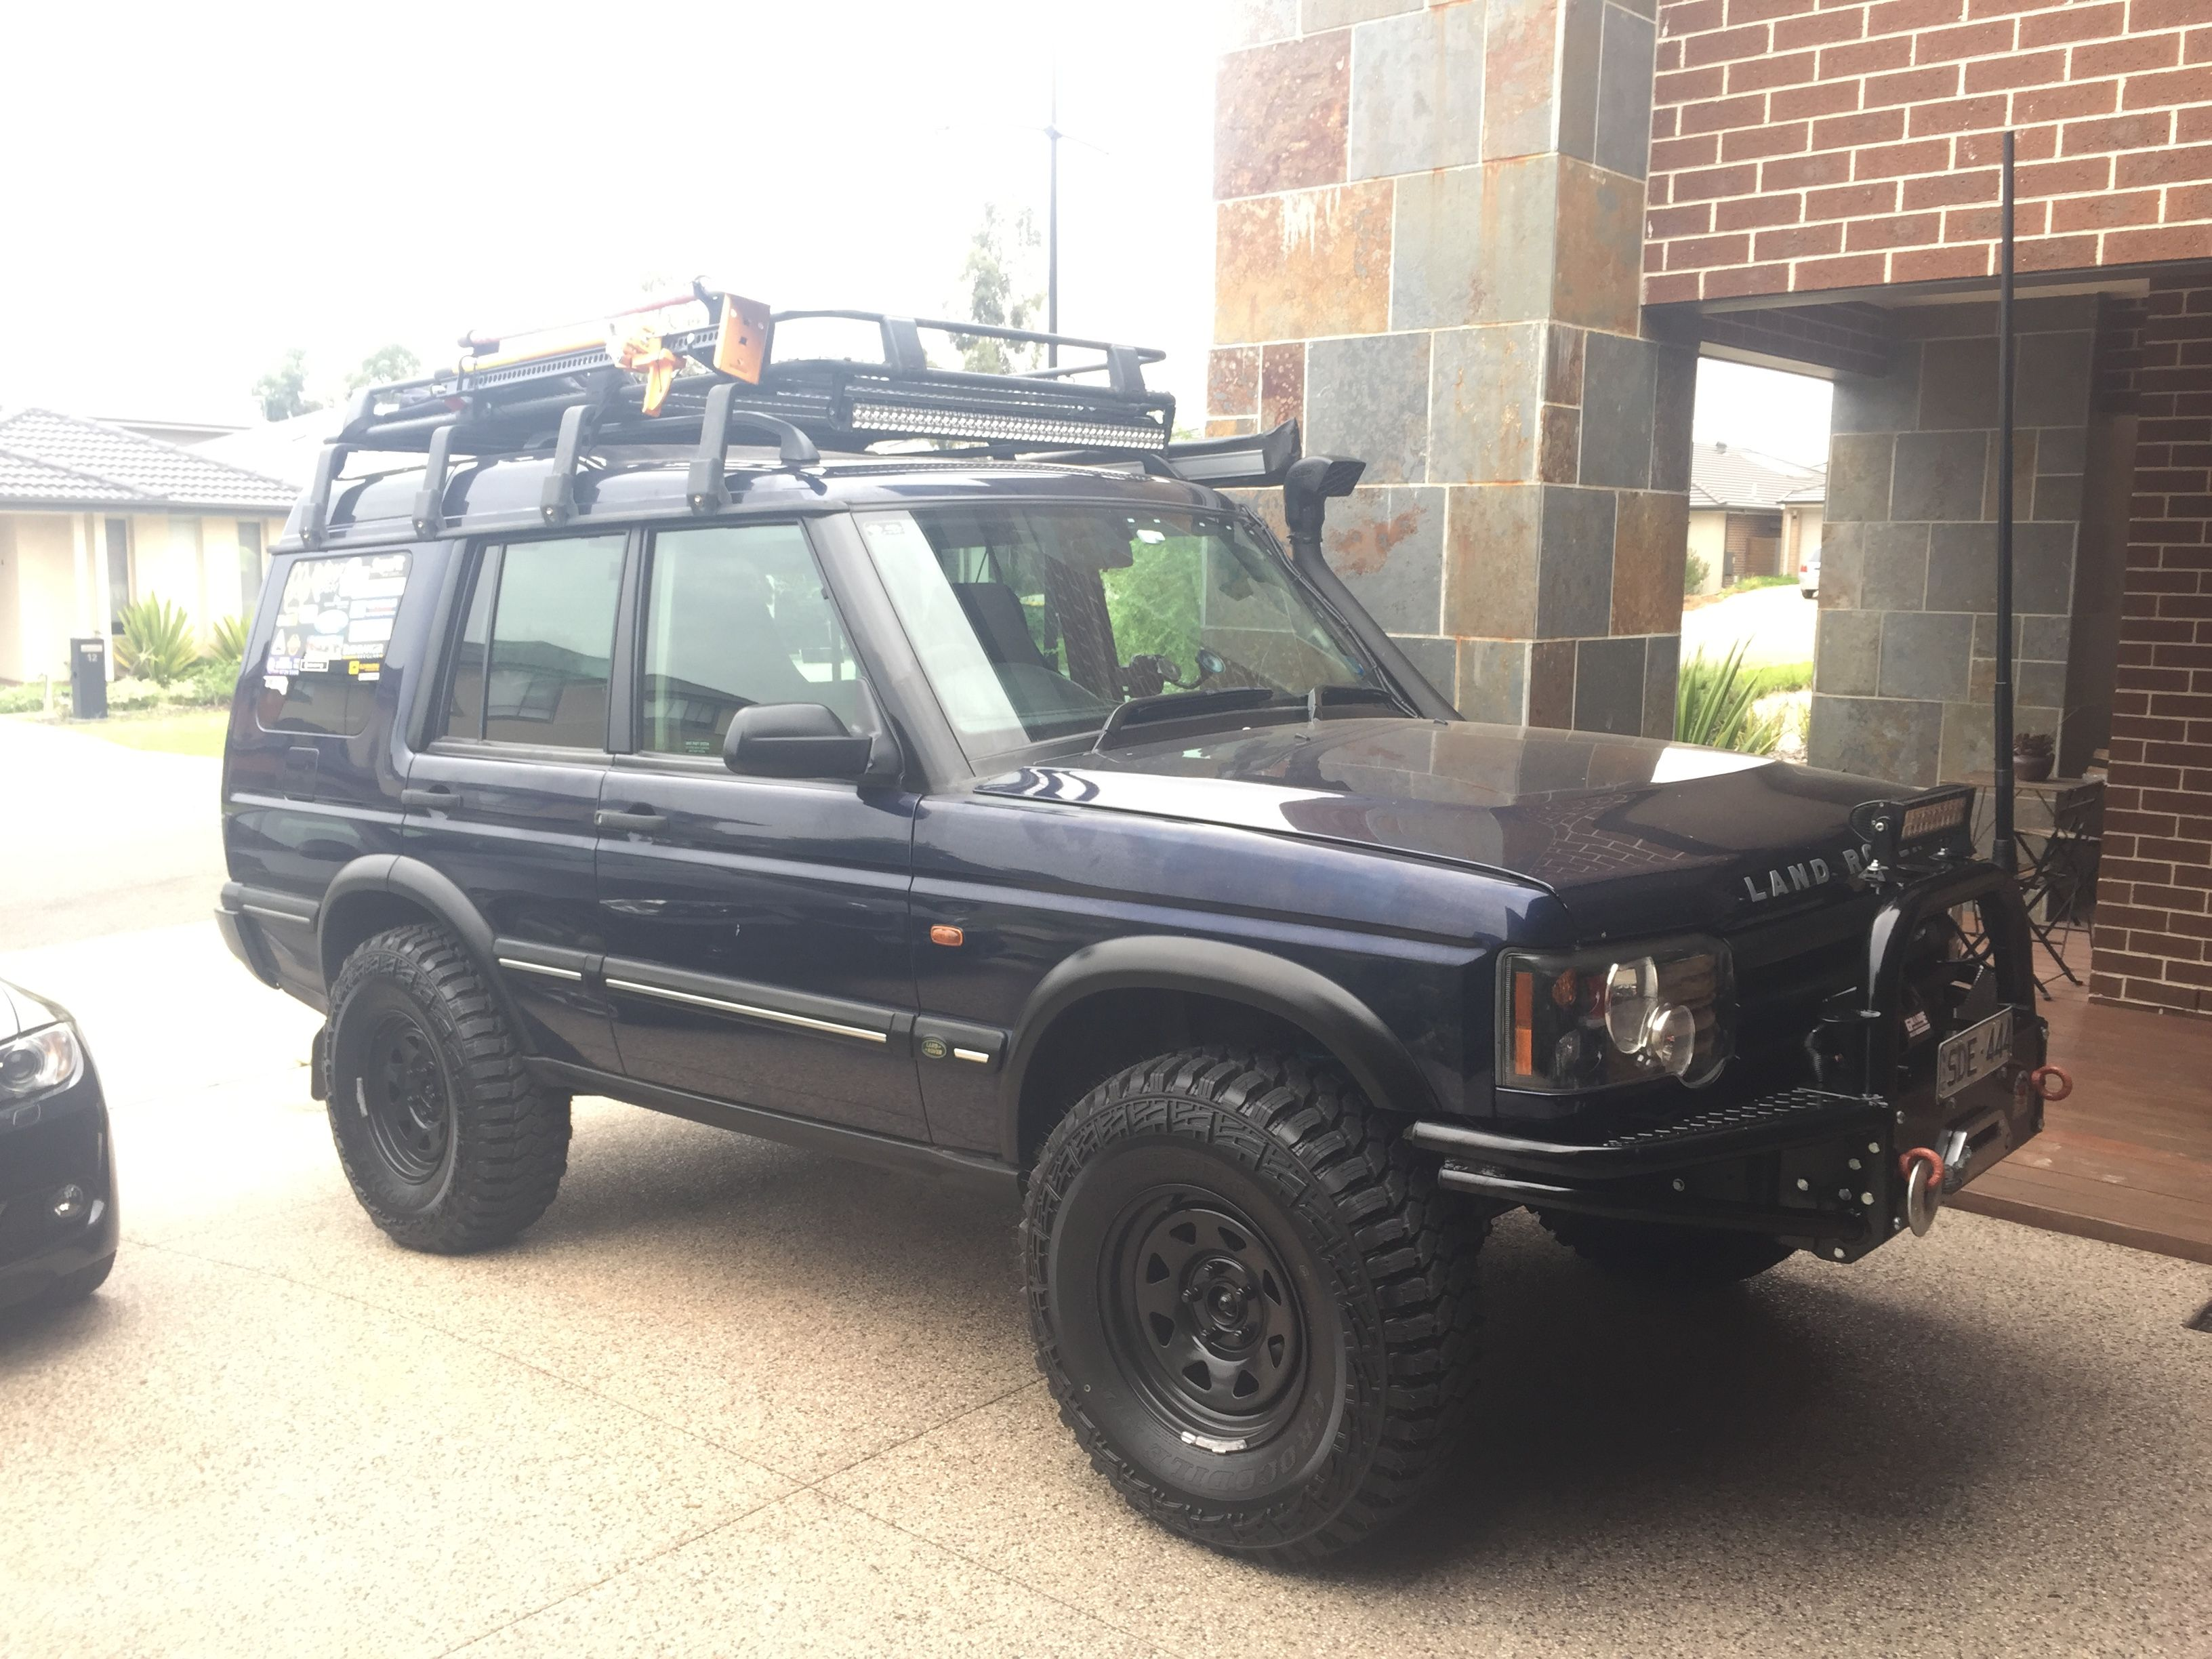 V8 Disco 2 Land Rover Love My Pride And Joy And Project Land Rover Discovery 2 Land Rover Discovery 1 Land Rover